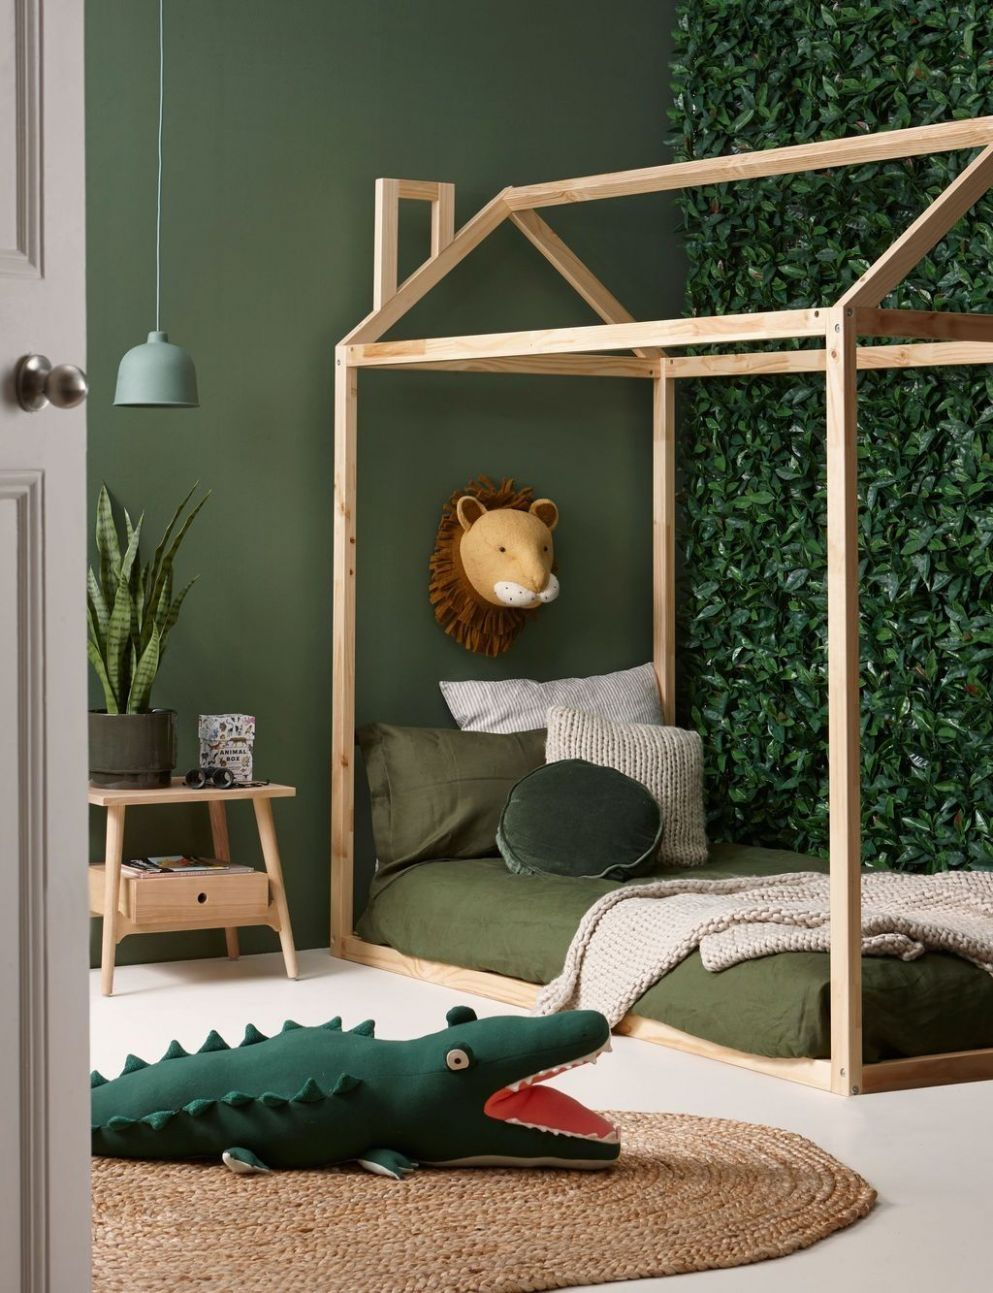 9+ Charming Kids Bedroom Ideas With Jungle Theme To Try | Kids ..